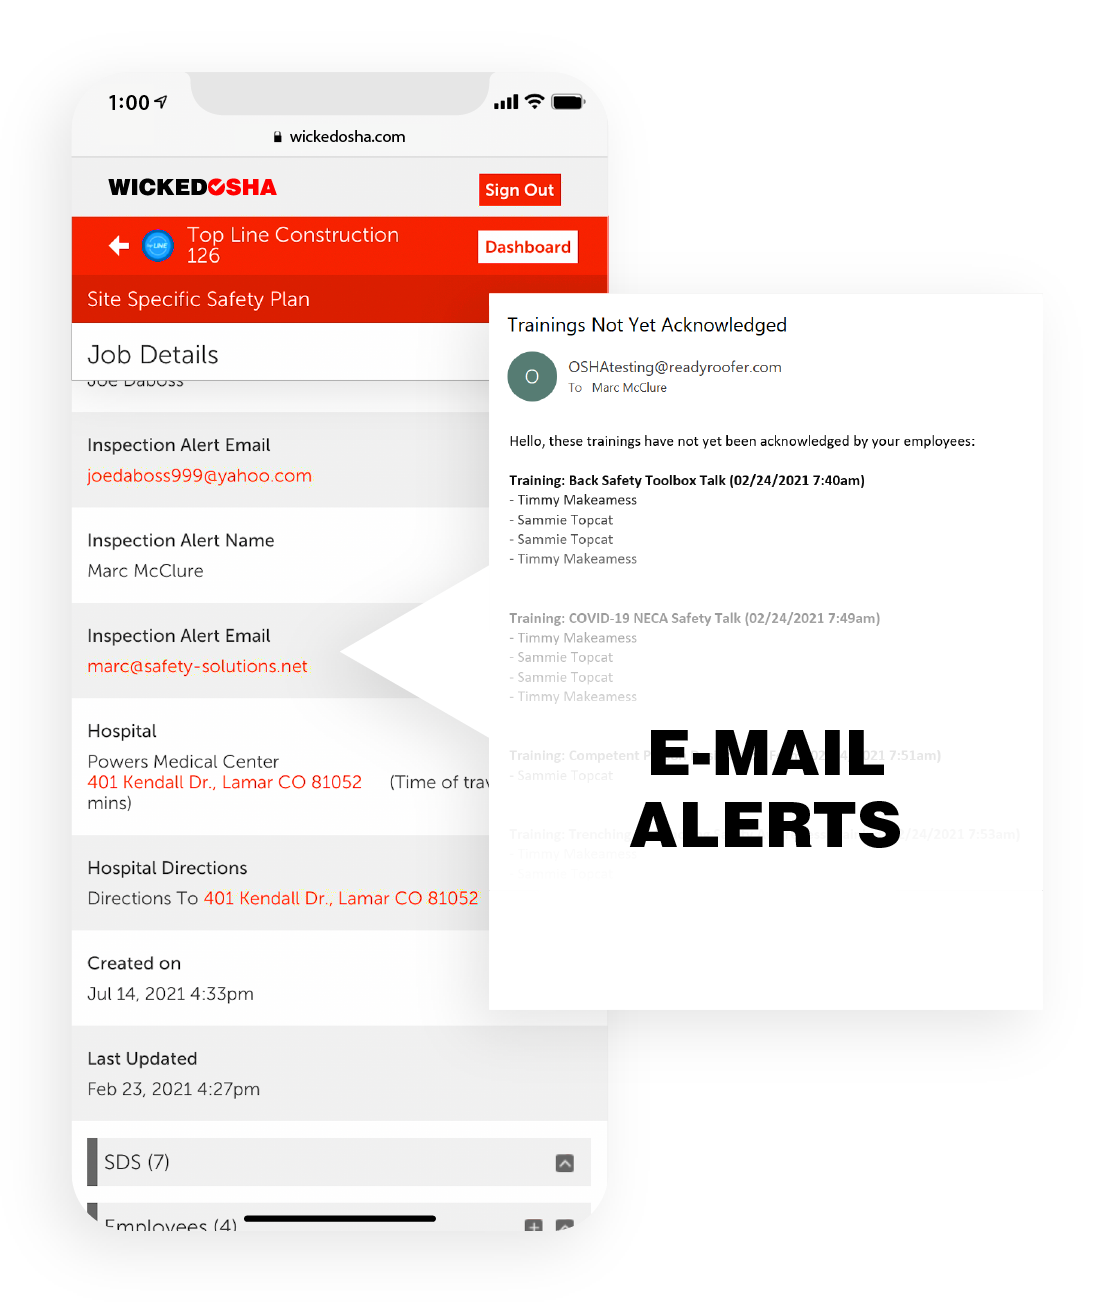 Screenshot of Wicked OSHA app showcasing job details information with a white box to the right showing email alerts that are sent based on trainings not being completed